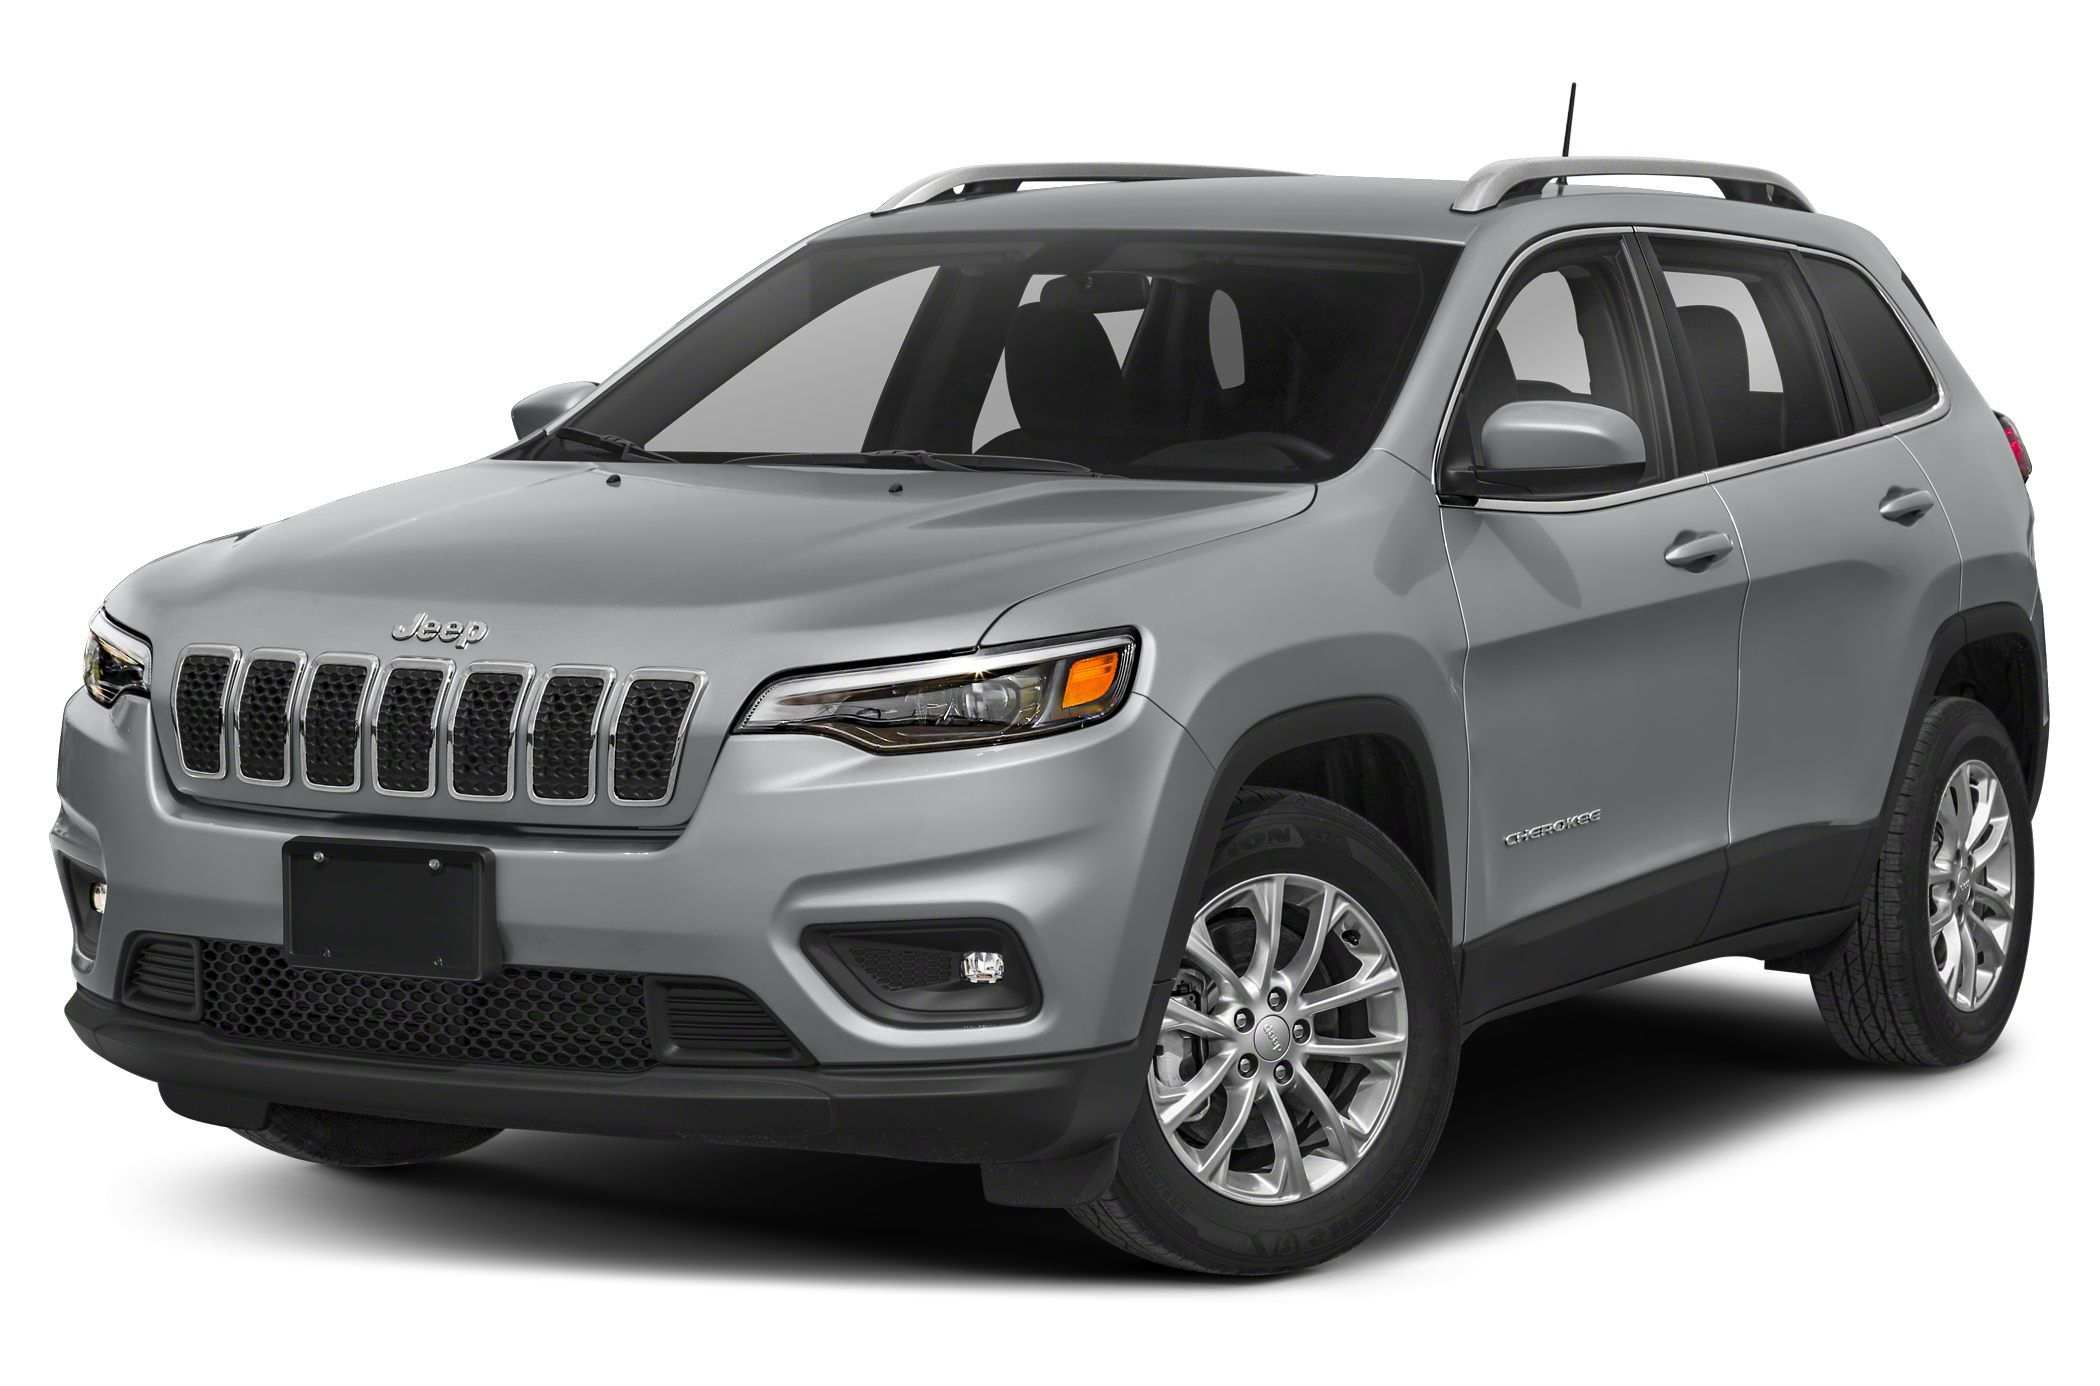 57 Great 2020 Jeep Trail Hawk Performance with 2020 Jeep Trail Hawk